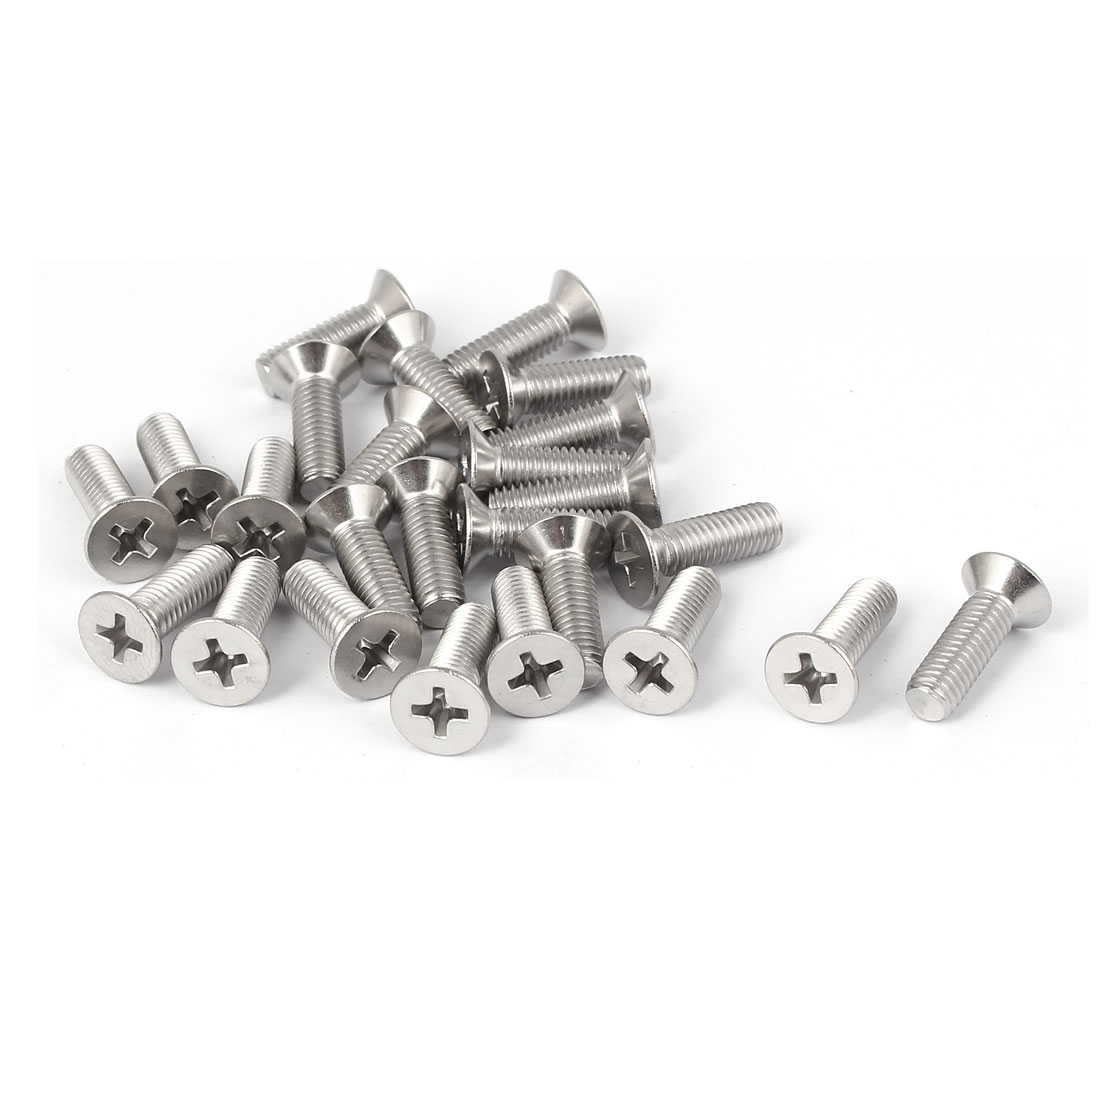 25 Pcs M5x16mm 316 Stainless Steel Countersunk Phillips Machine Screws Bolts